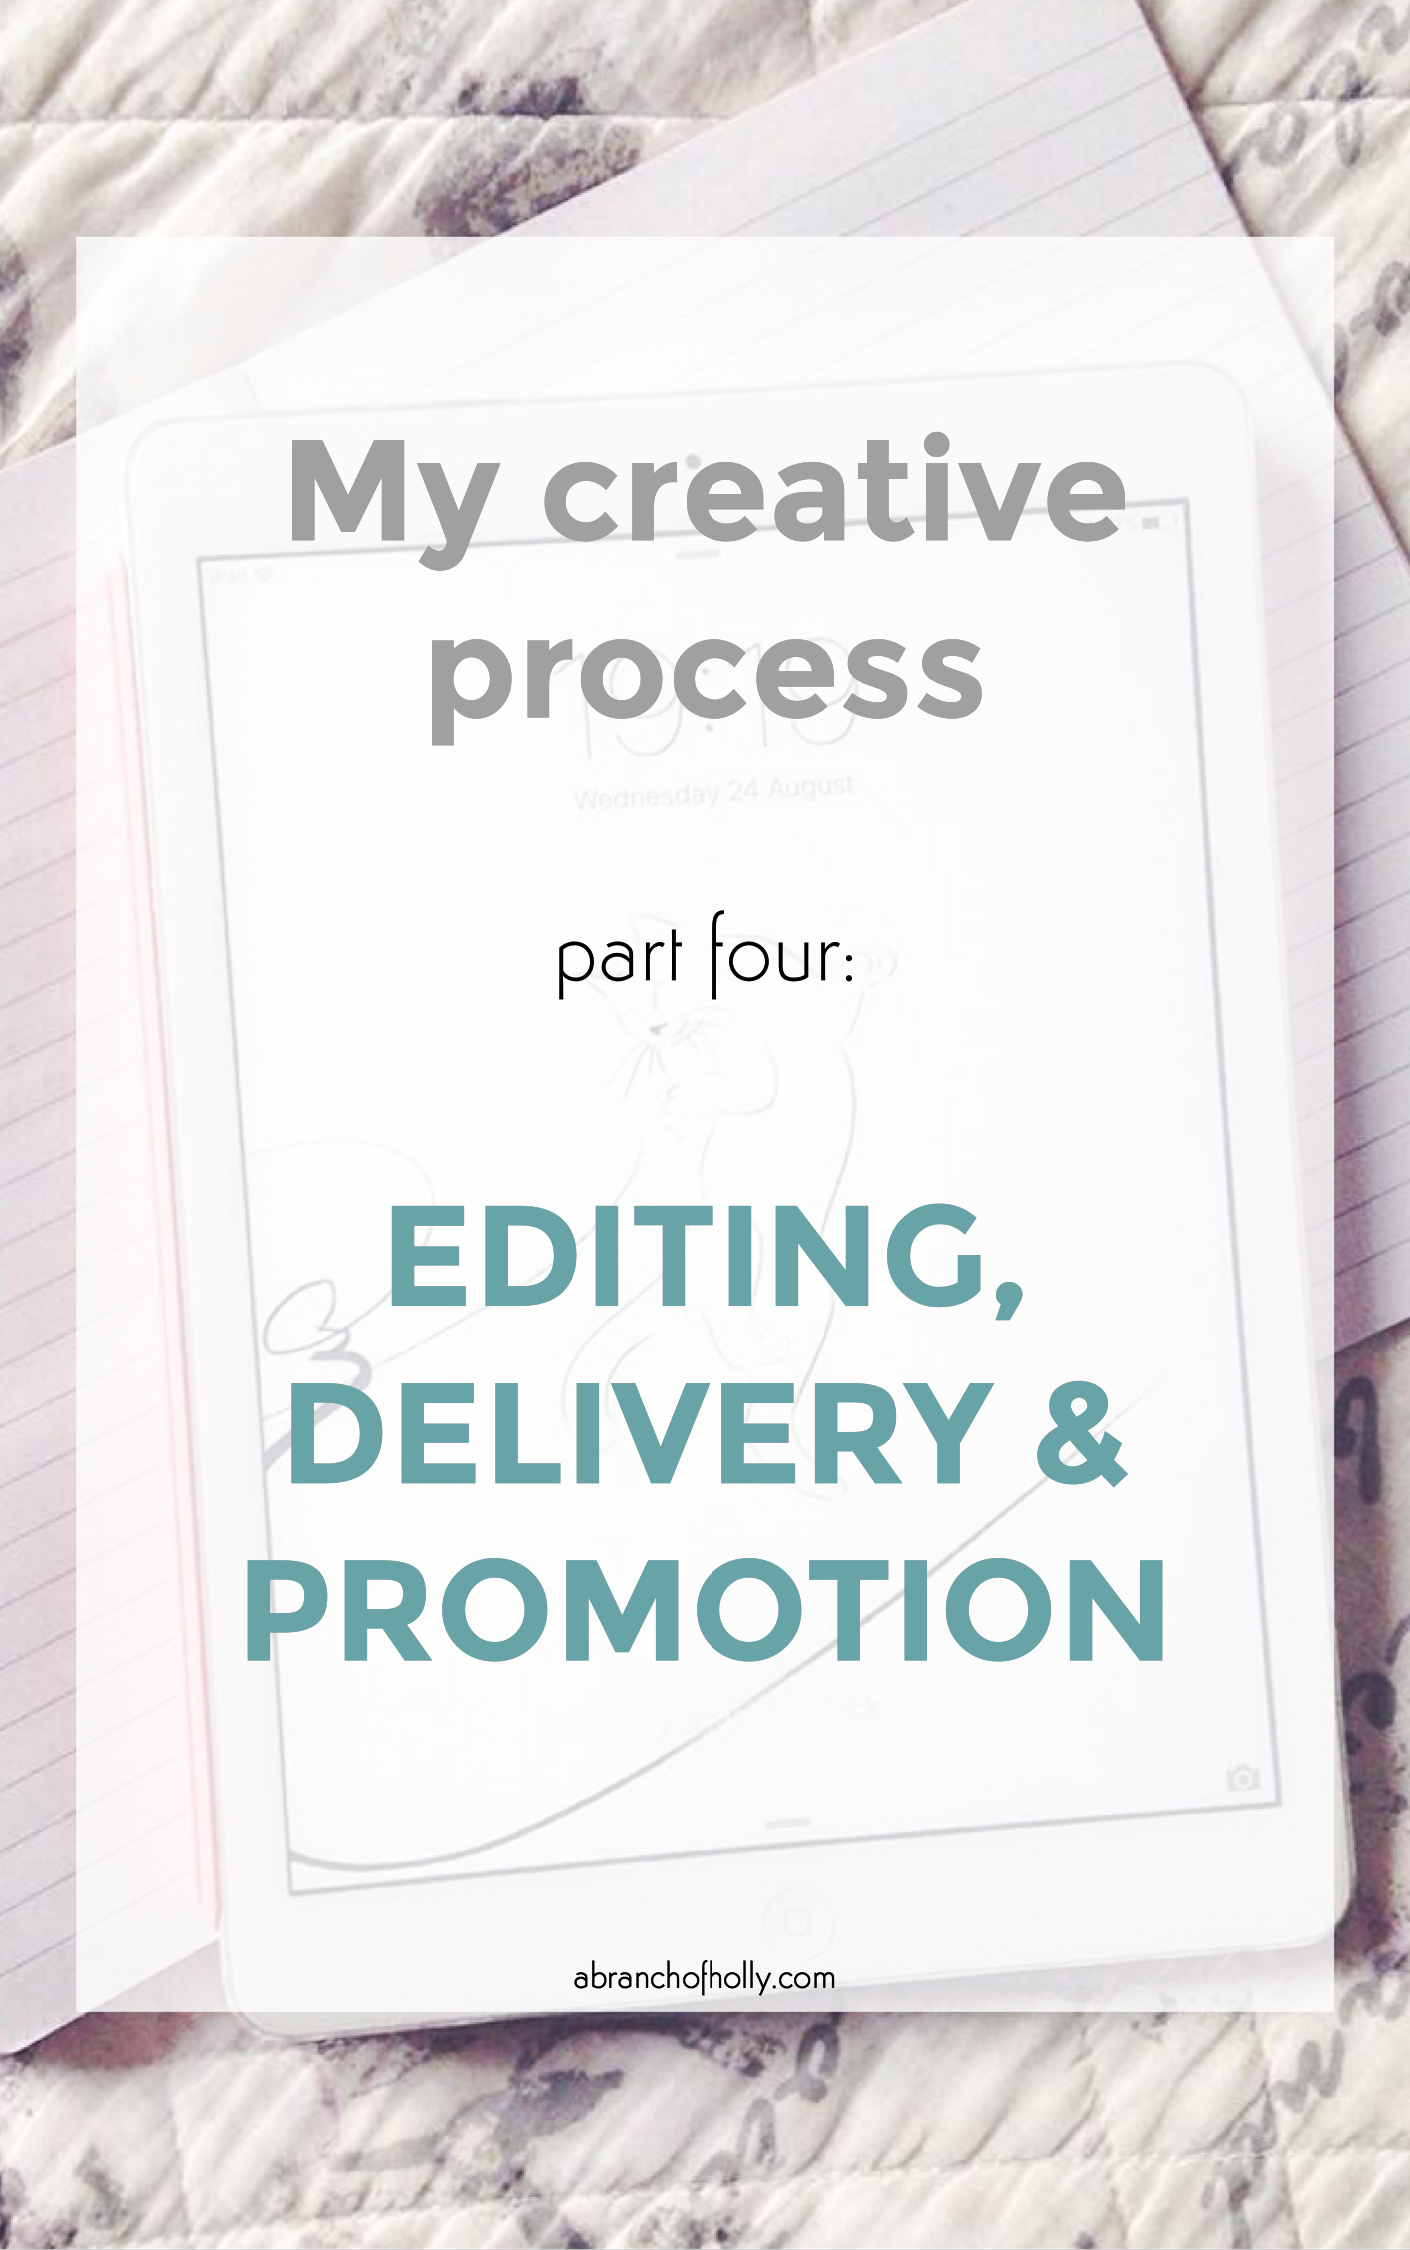 my creative process part four - editing, delivery and promotion